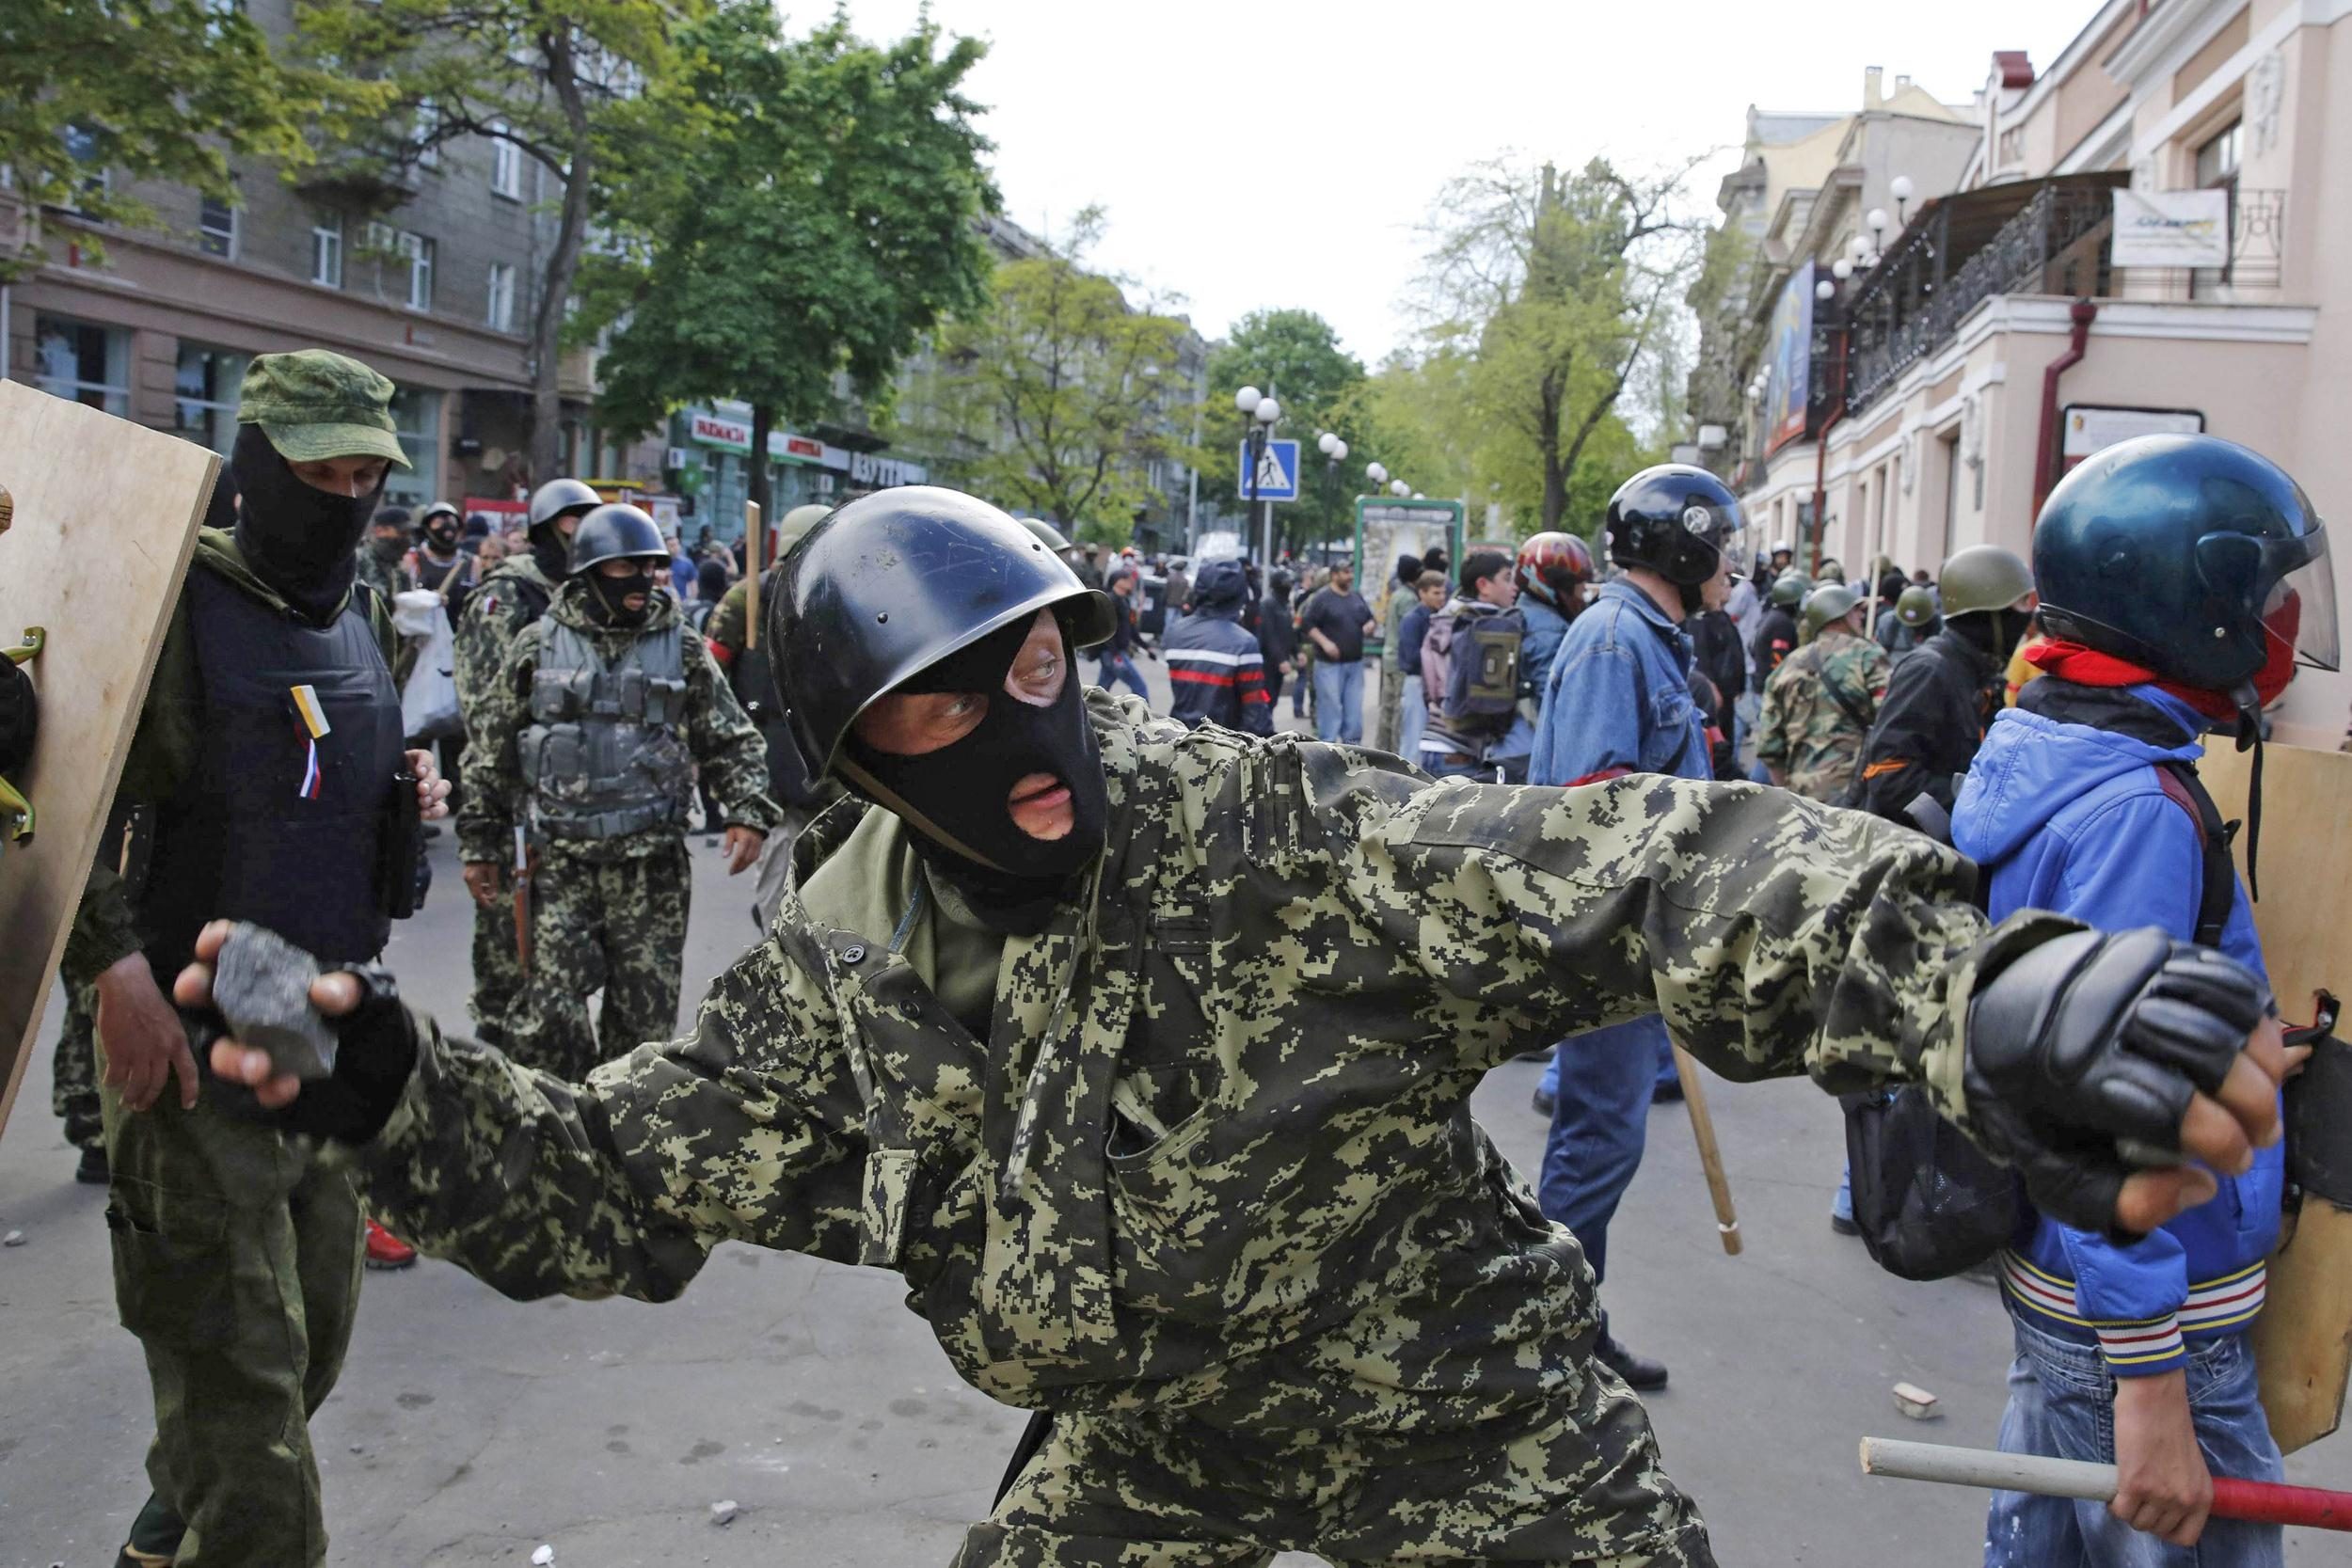 Image: A pro-Russian activist hurls an object at supporters of the Kiev government during clashes in the streets of Odessa